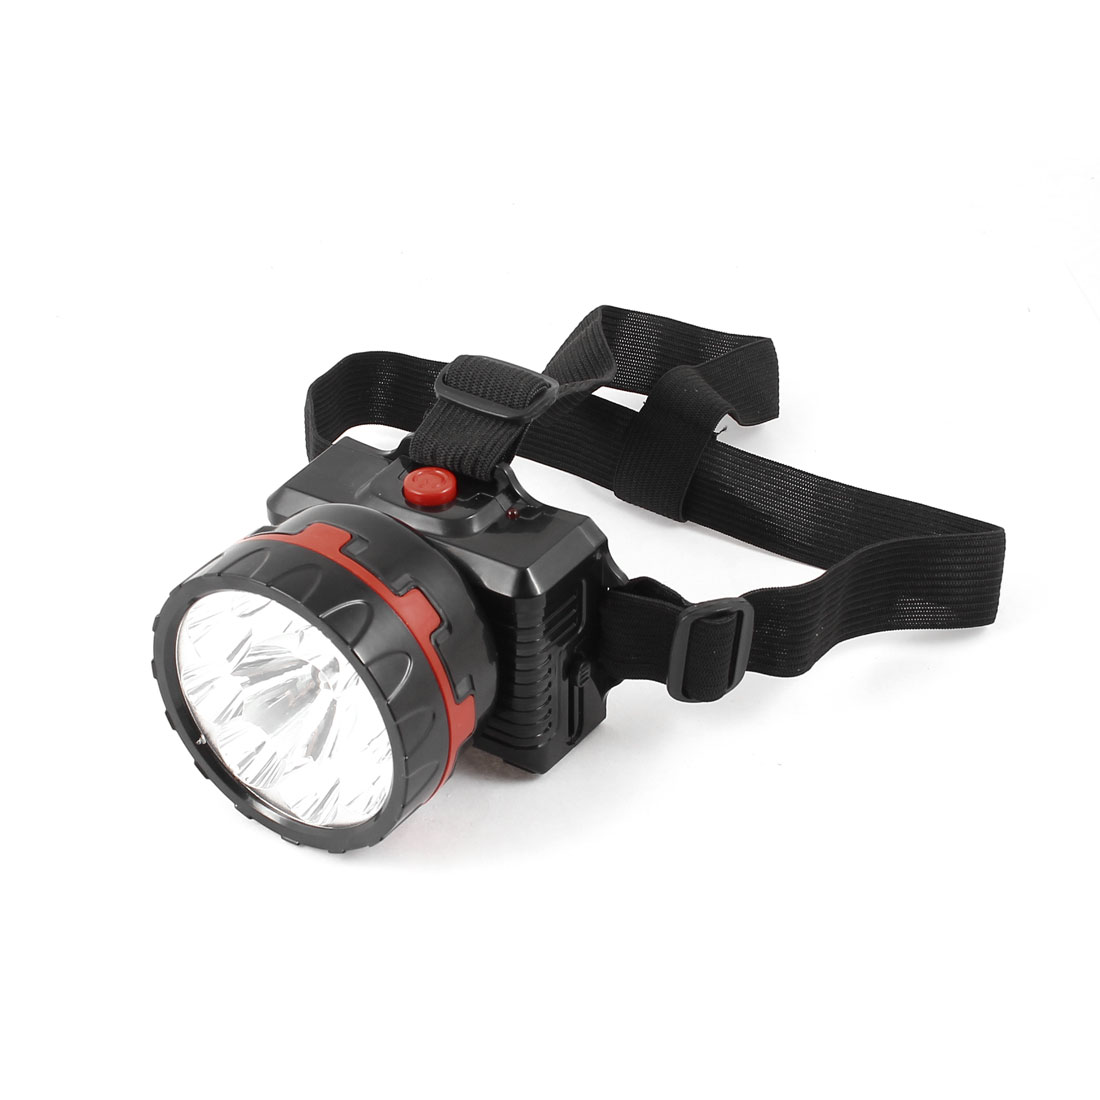 AC 110V-240V US Plug Rechargeable White Light 3 Modes 9 LEDs Torch Head Lamp Black